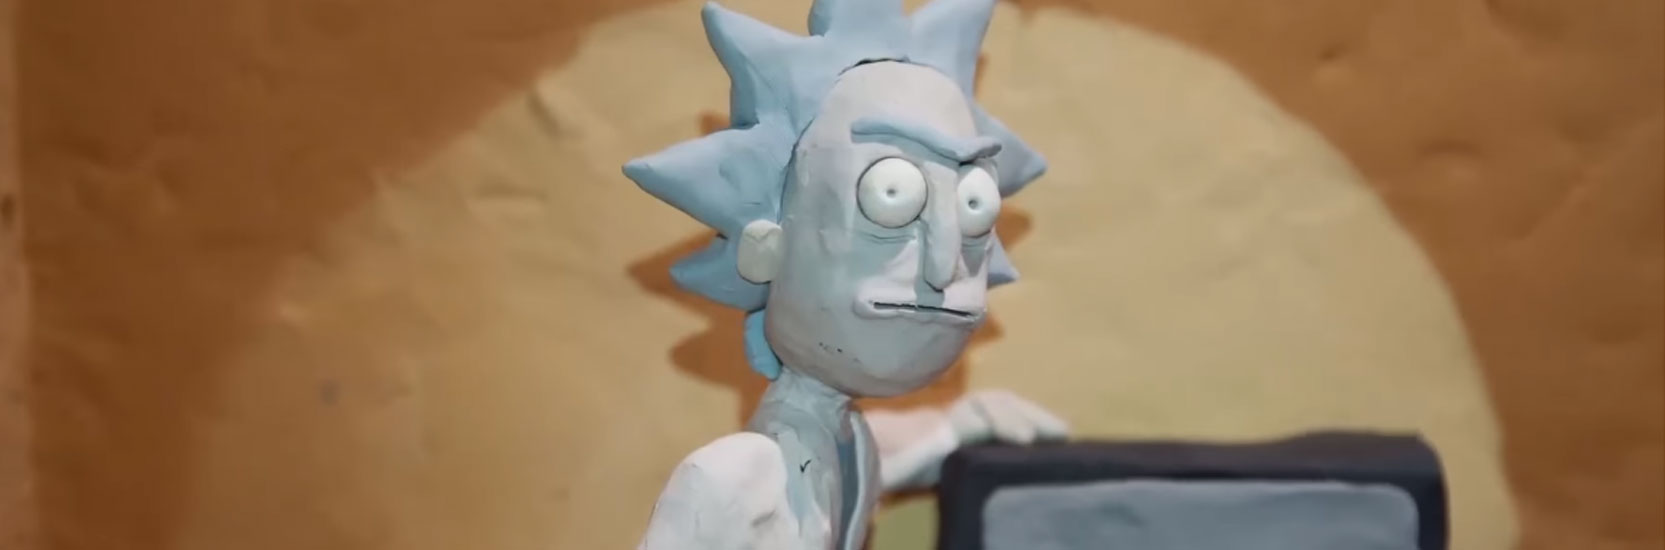 "Avant la saison 3, Lee Hardcastle s'amuse avec ""Rick et Morty"" !"